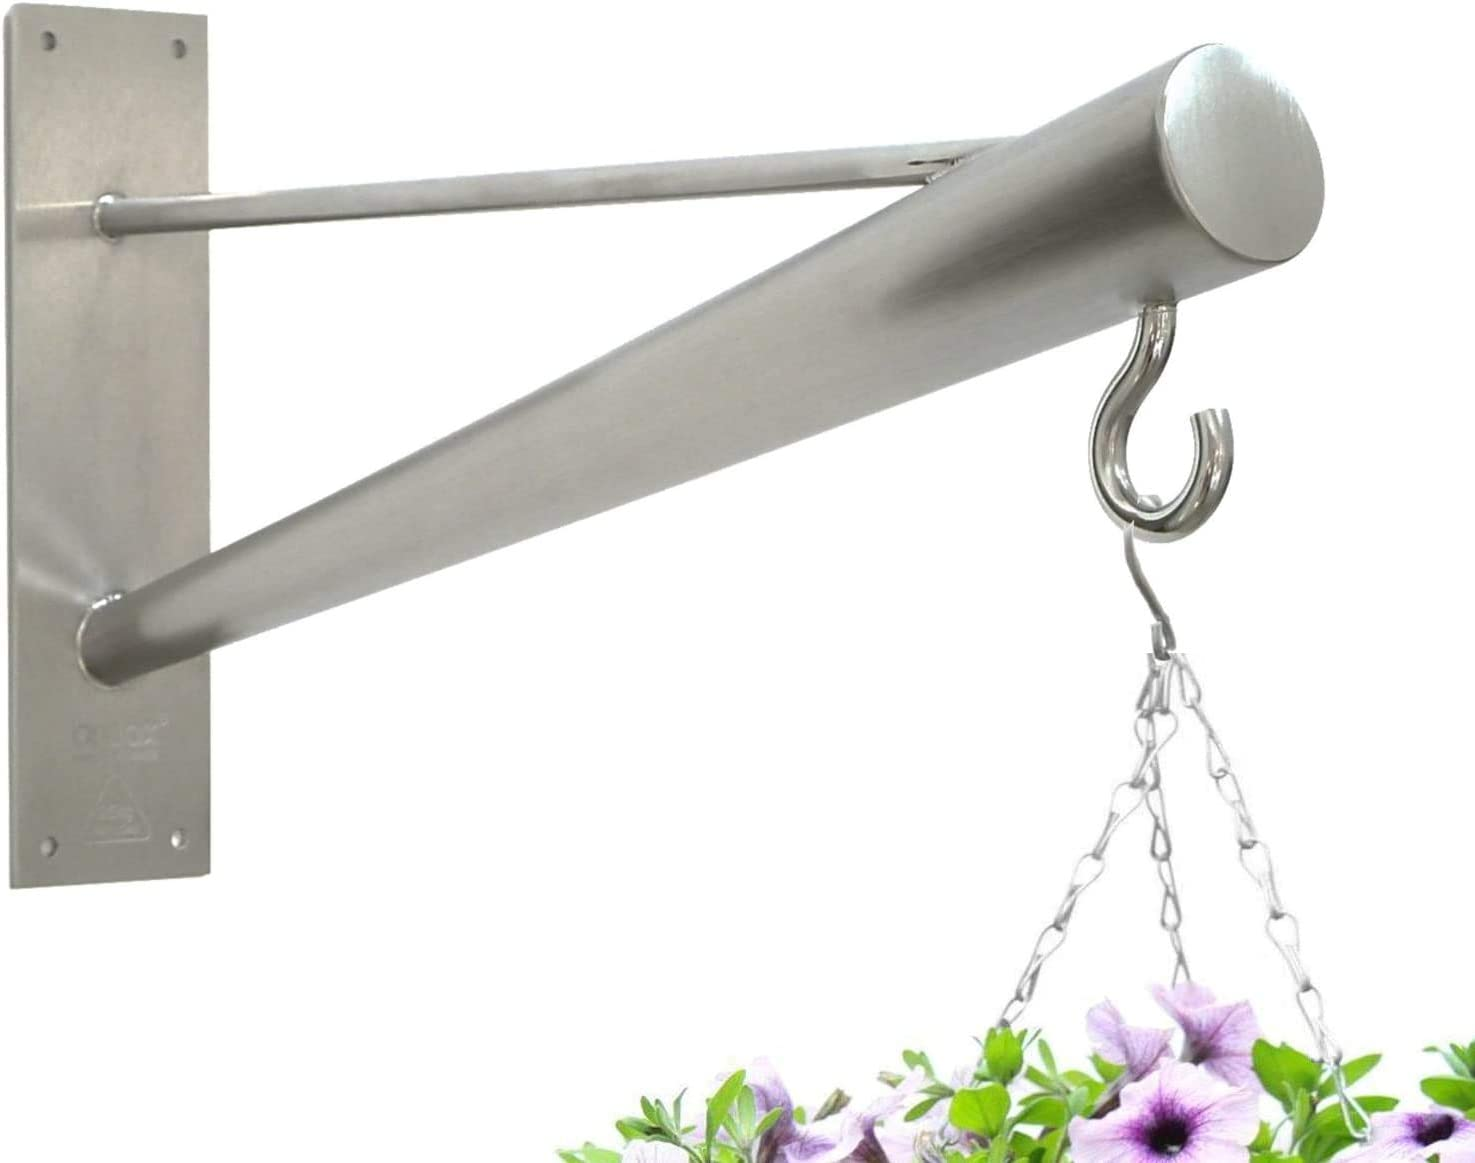 Braax Hangtec Cone Ht 4a09 Stainless Steel Wall Bracket Hook Hanger For Hanging Baskets Bird Feeders Topiary Balls Lights Lanterns Wind Chimes Or Similar Amazon Co Uk Garden Outdoors